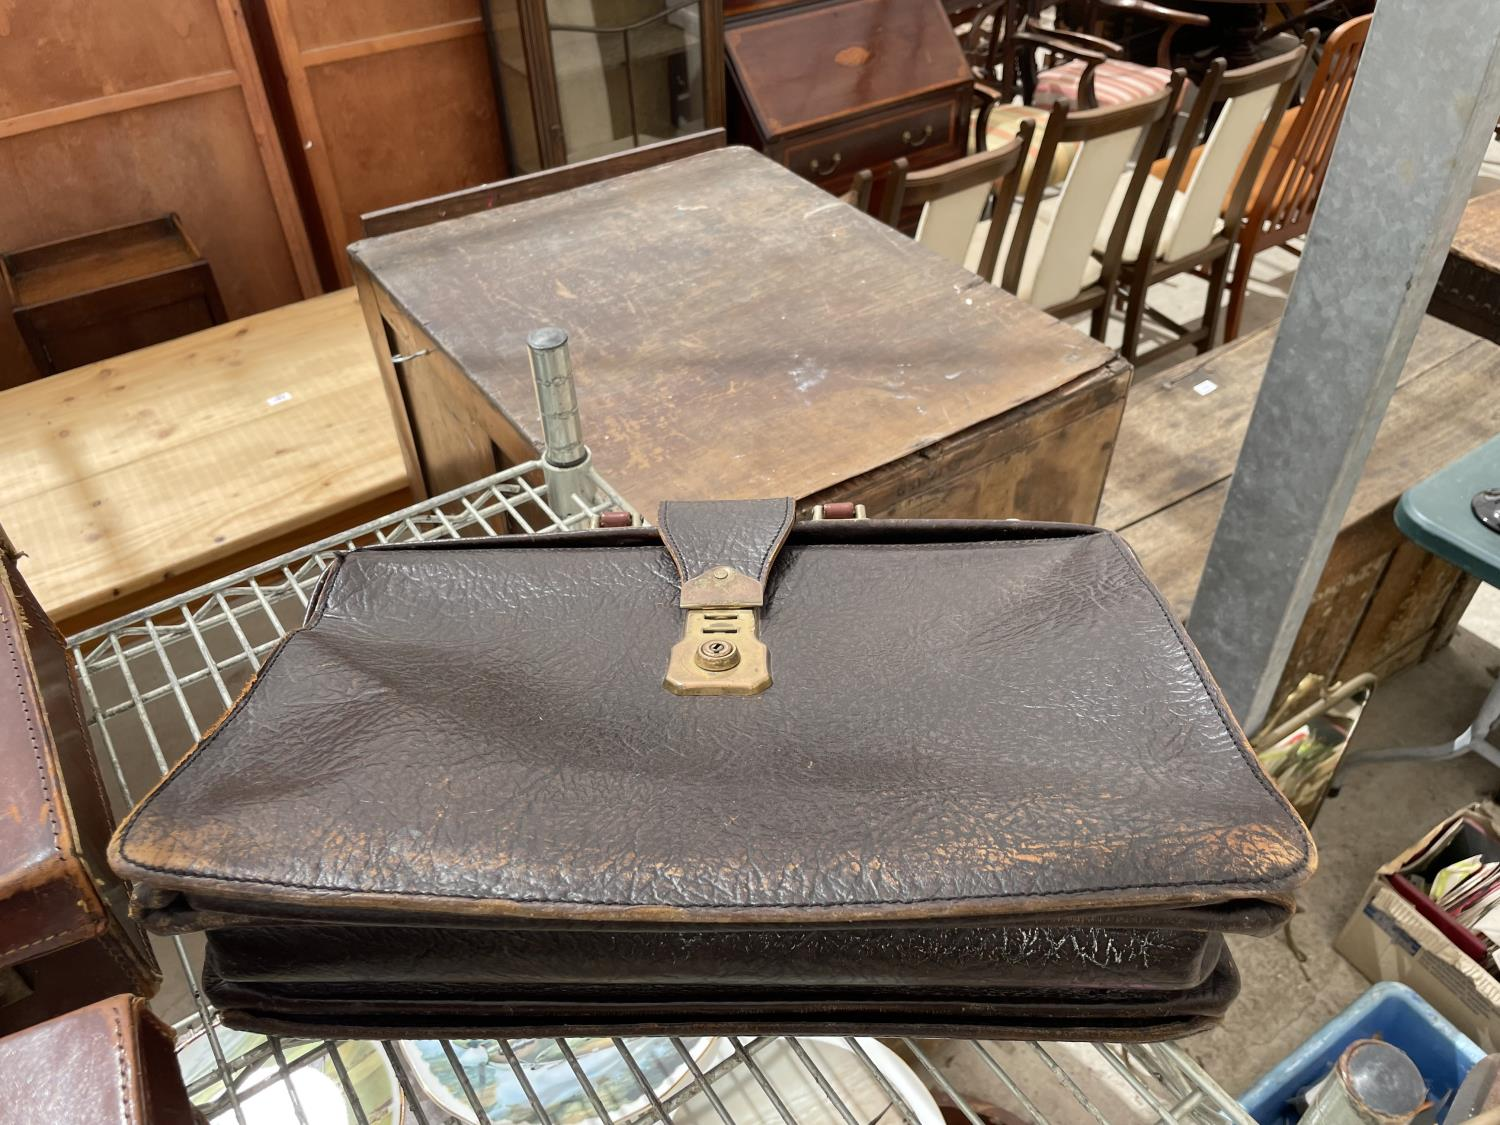 AN ASSORTMENT OF VINTAGE LEATHER TRAVEL CASES - Image 3 of 6